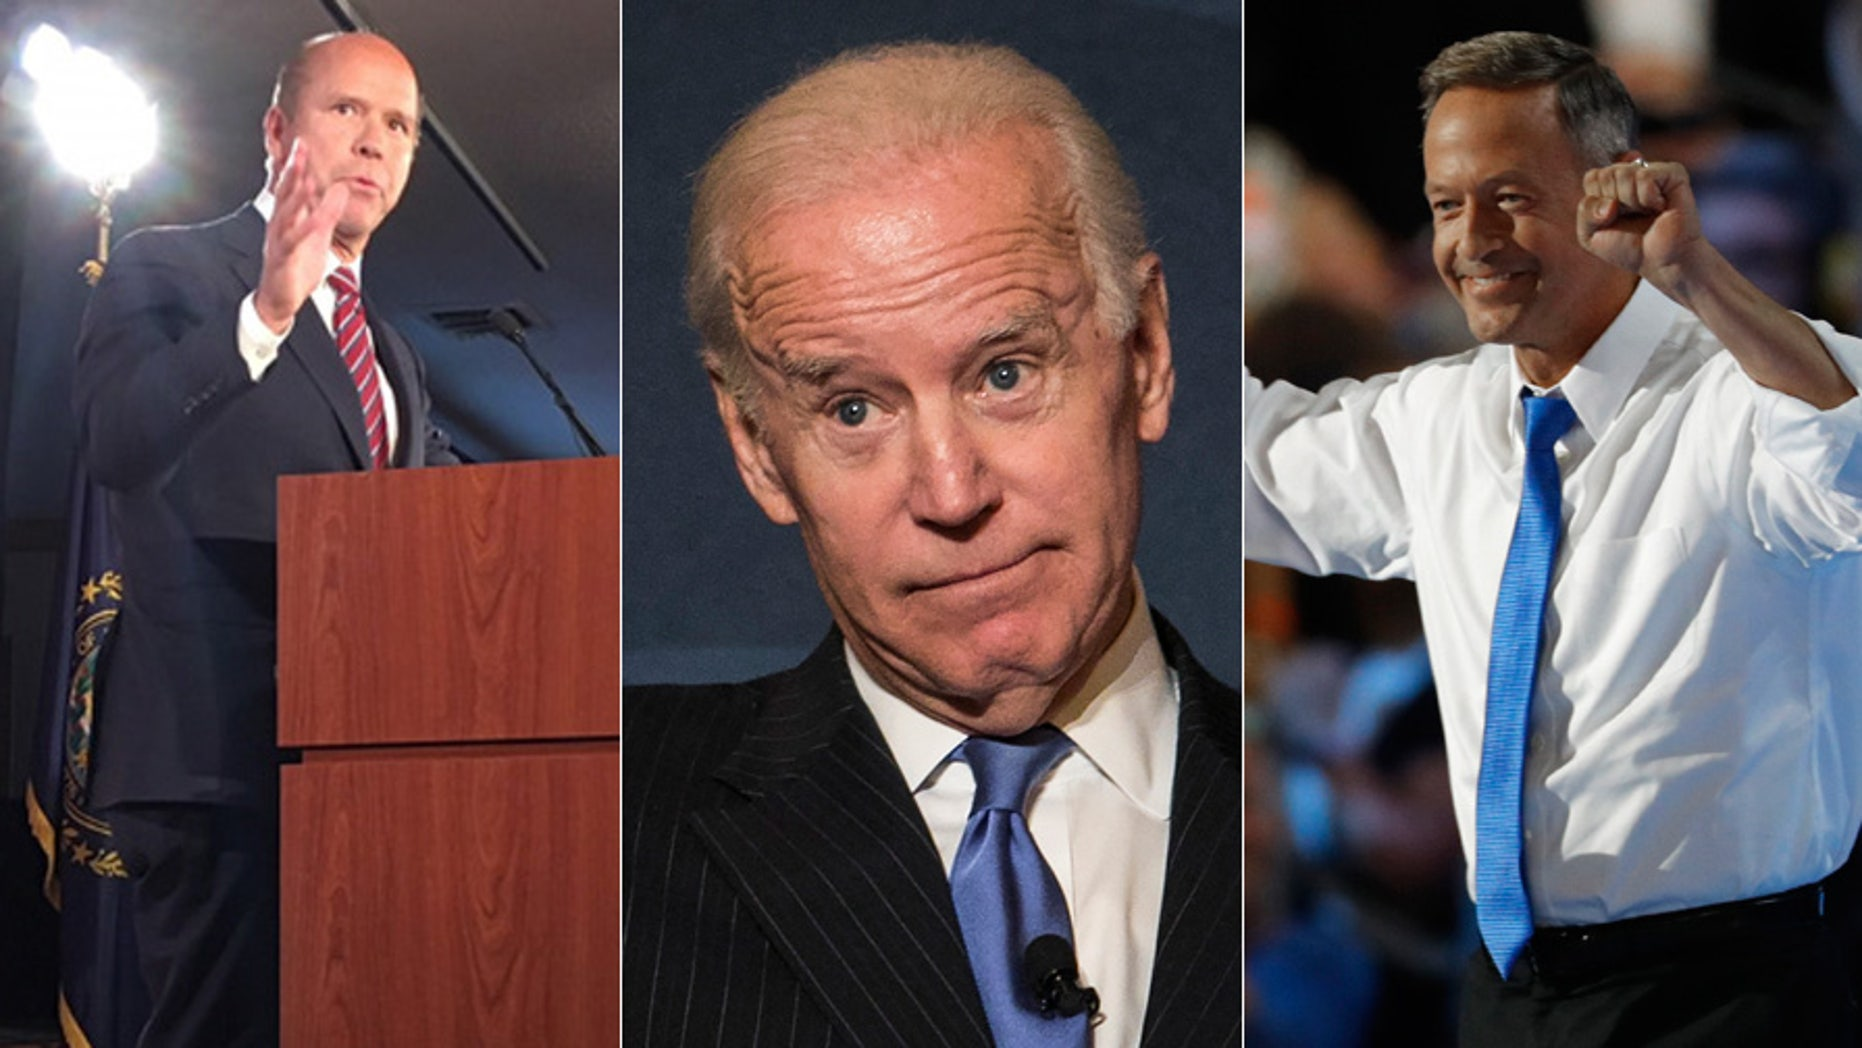 Rep. John Delaney, left; former Vice President Joe Biden, center; and former Maryland Gov. Martin O'Malley have all visited New Hampshire this year.